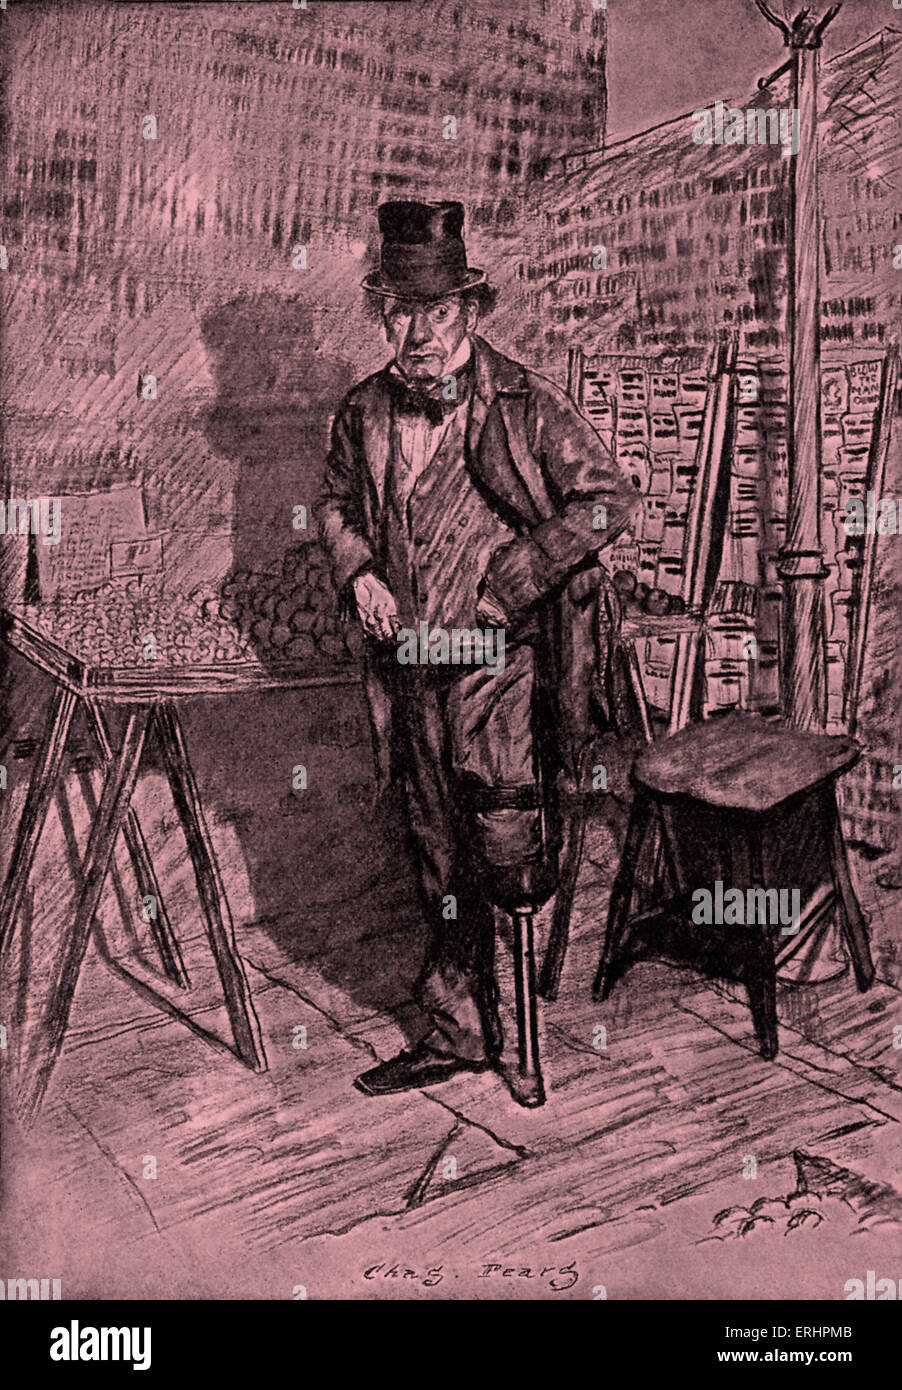 Charles Dickens's 'Our Mutual Friend' - Silas Wegg at his Stall near Mr. Boffin's house. Illustration - Stock Image